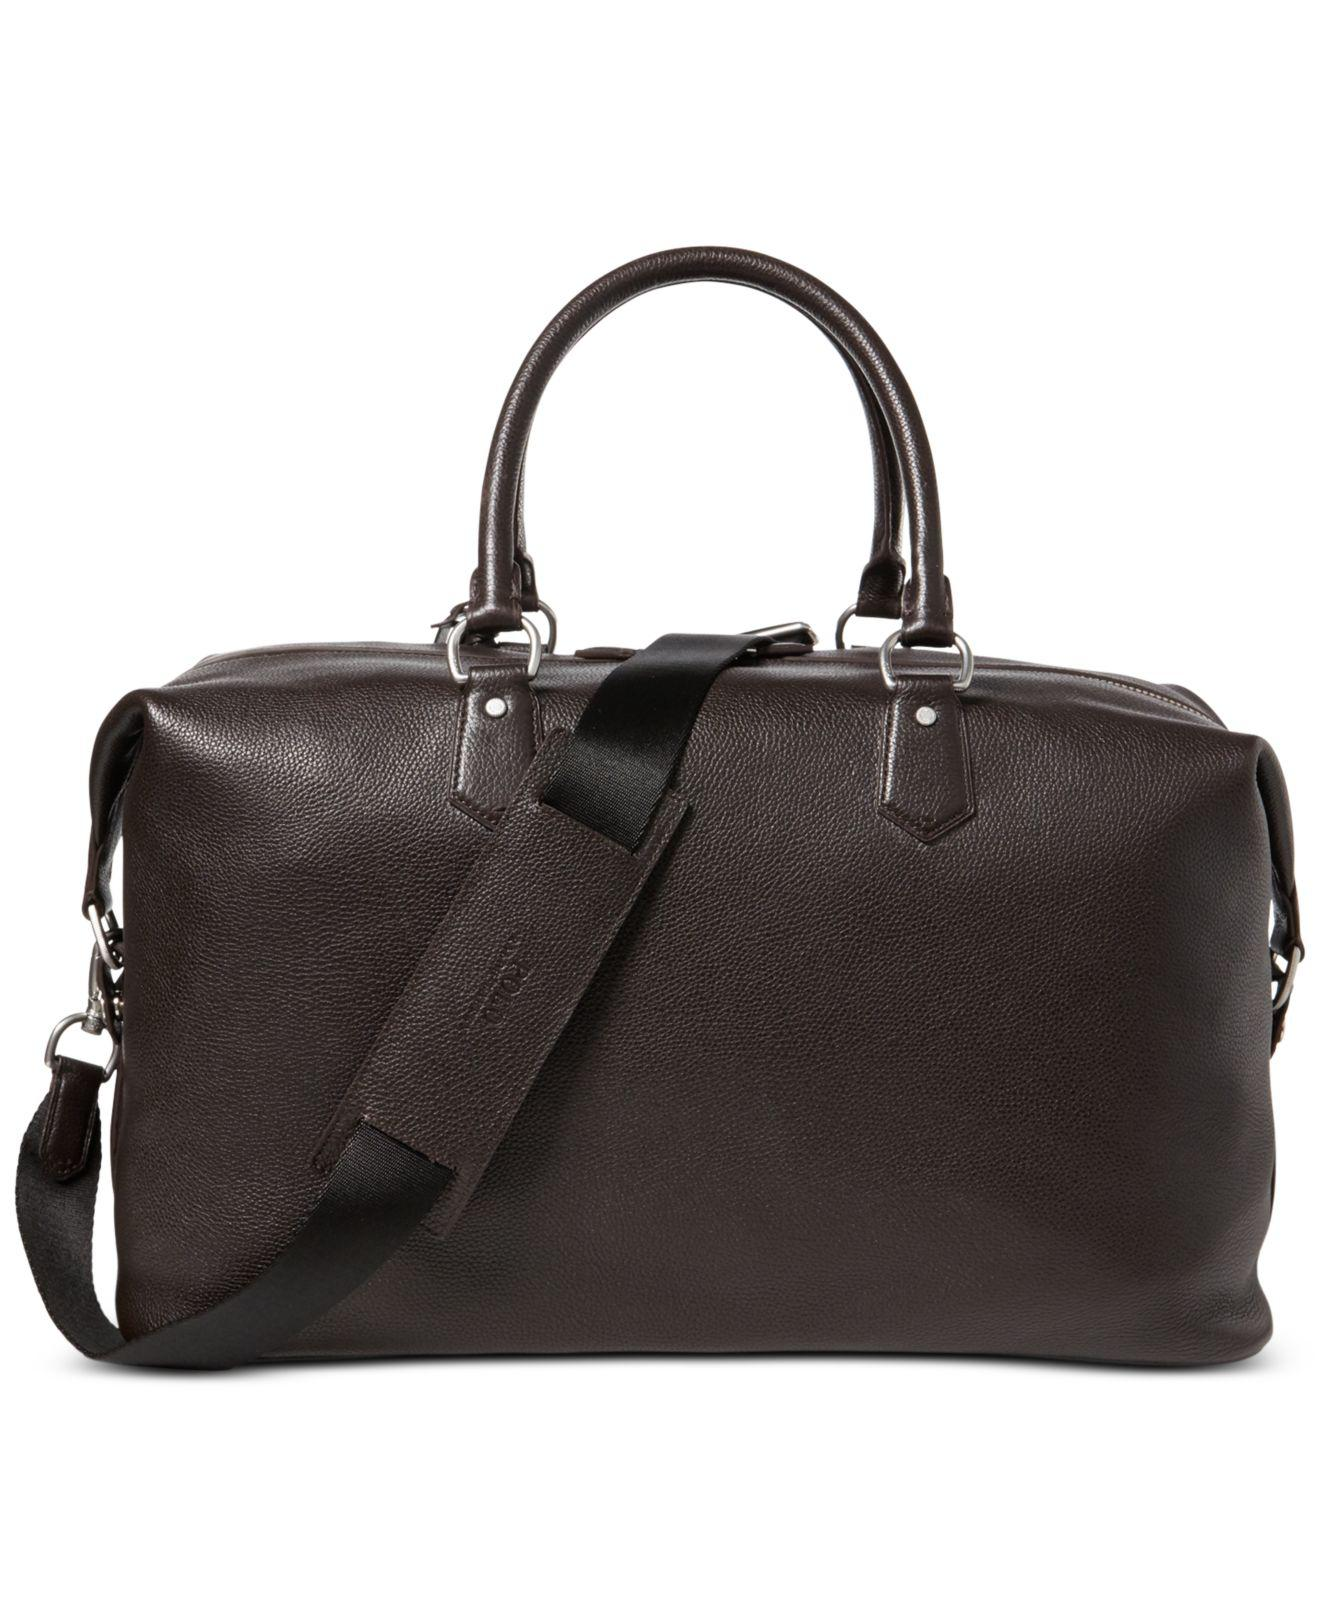 9c12f3e807 ... where to buy lyst polo ralph lauren mens pebbled leather duffel bag in  brown f4081 3e806